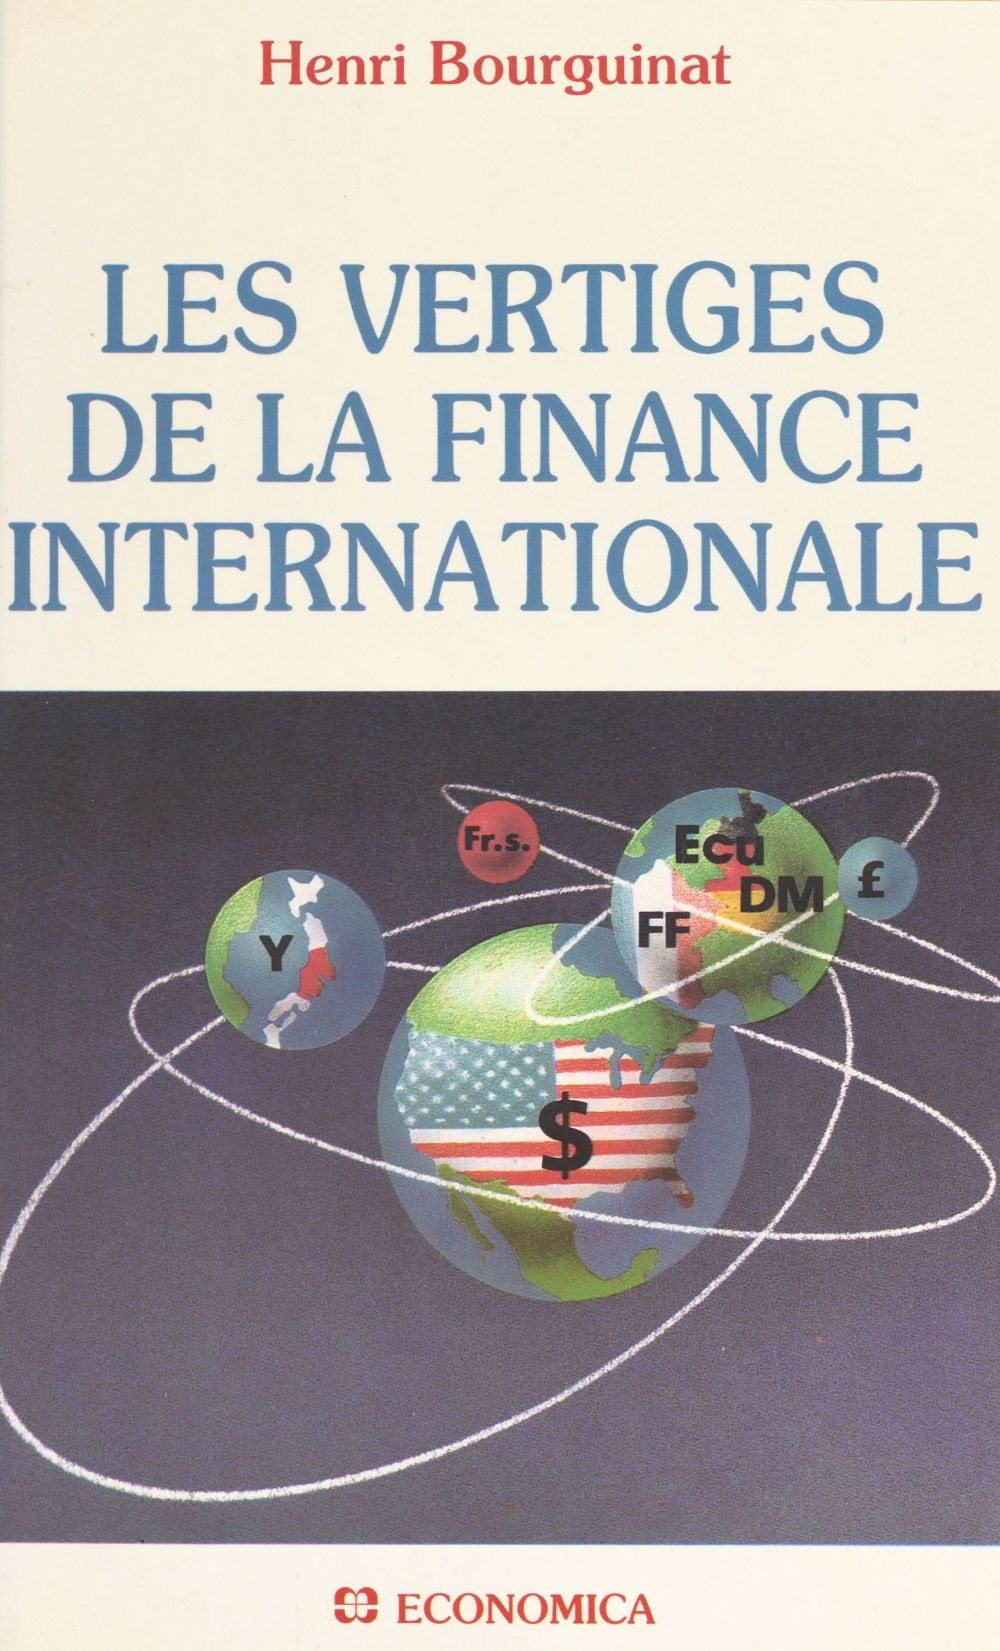 Les vertiges de la finance internationale